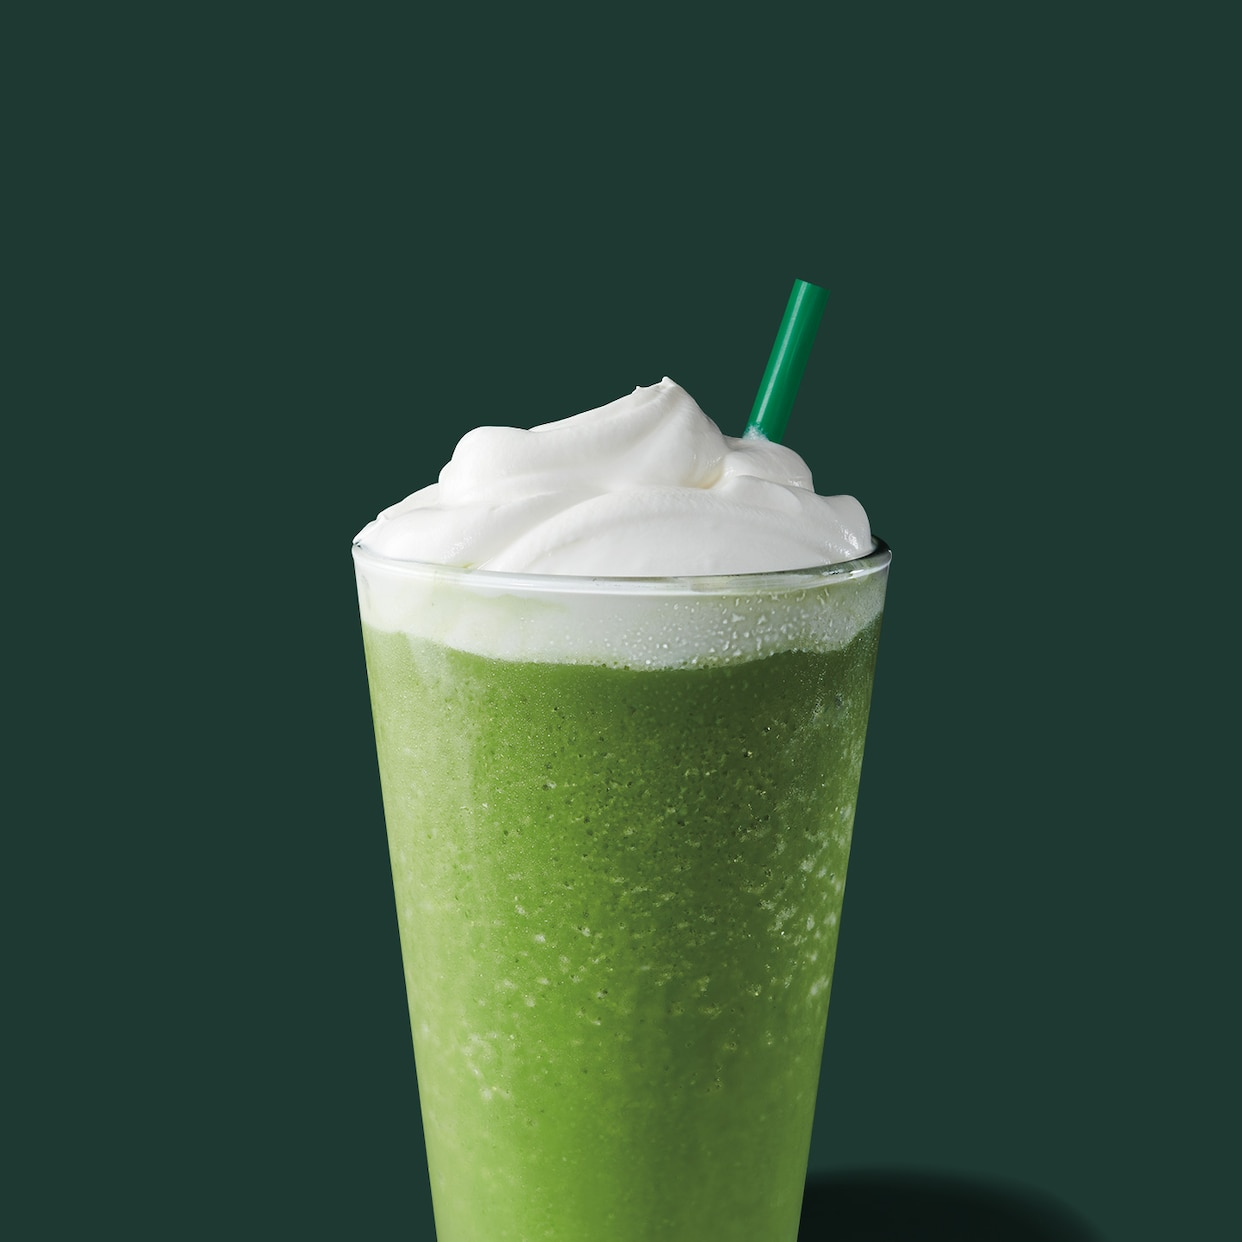 Matcha Green Tea Crème Frappuccino® Blended Beverage: Starbucks Coffee  Company